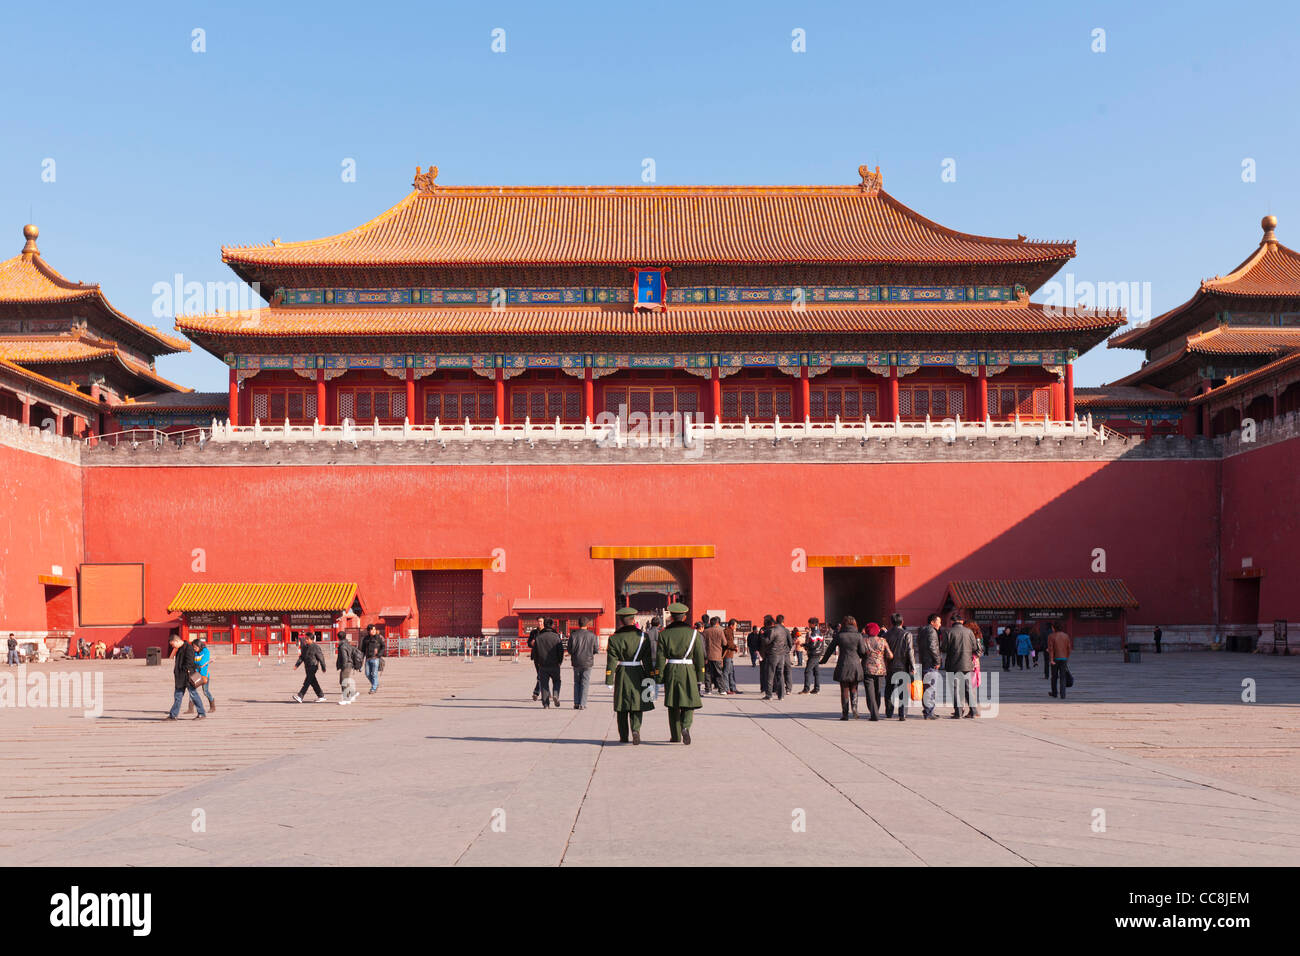 Tourists and police guards in the courtyard in front of the Meridian Gate, in the Forbidden City in Beijing. - Stock Image